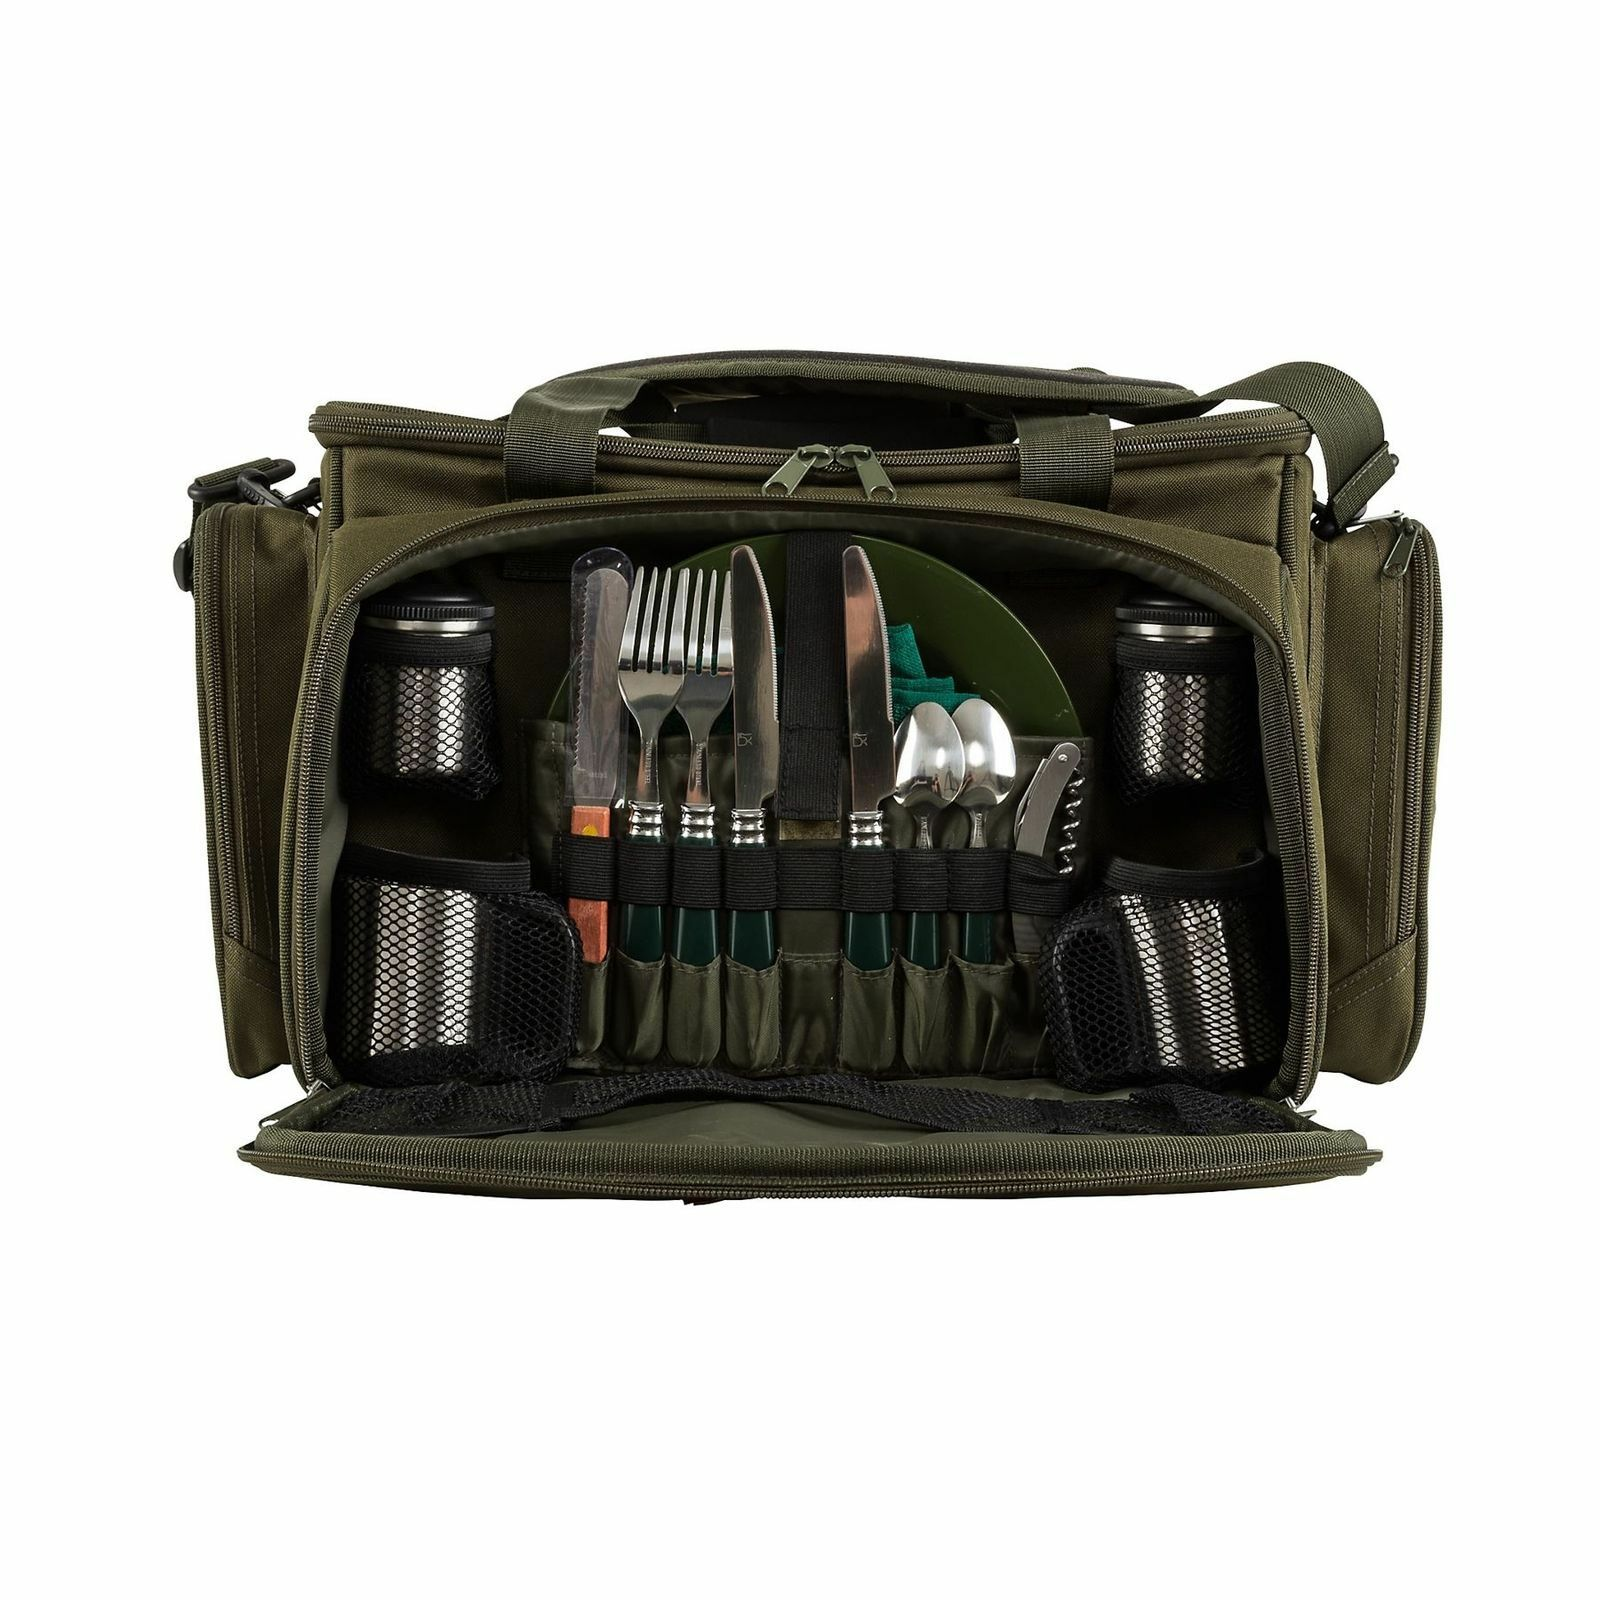 JRC Deffender Session food and cooler bag   fishing   camping bag